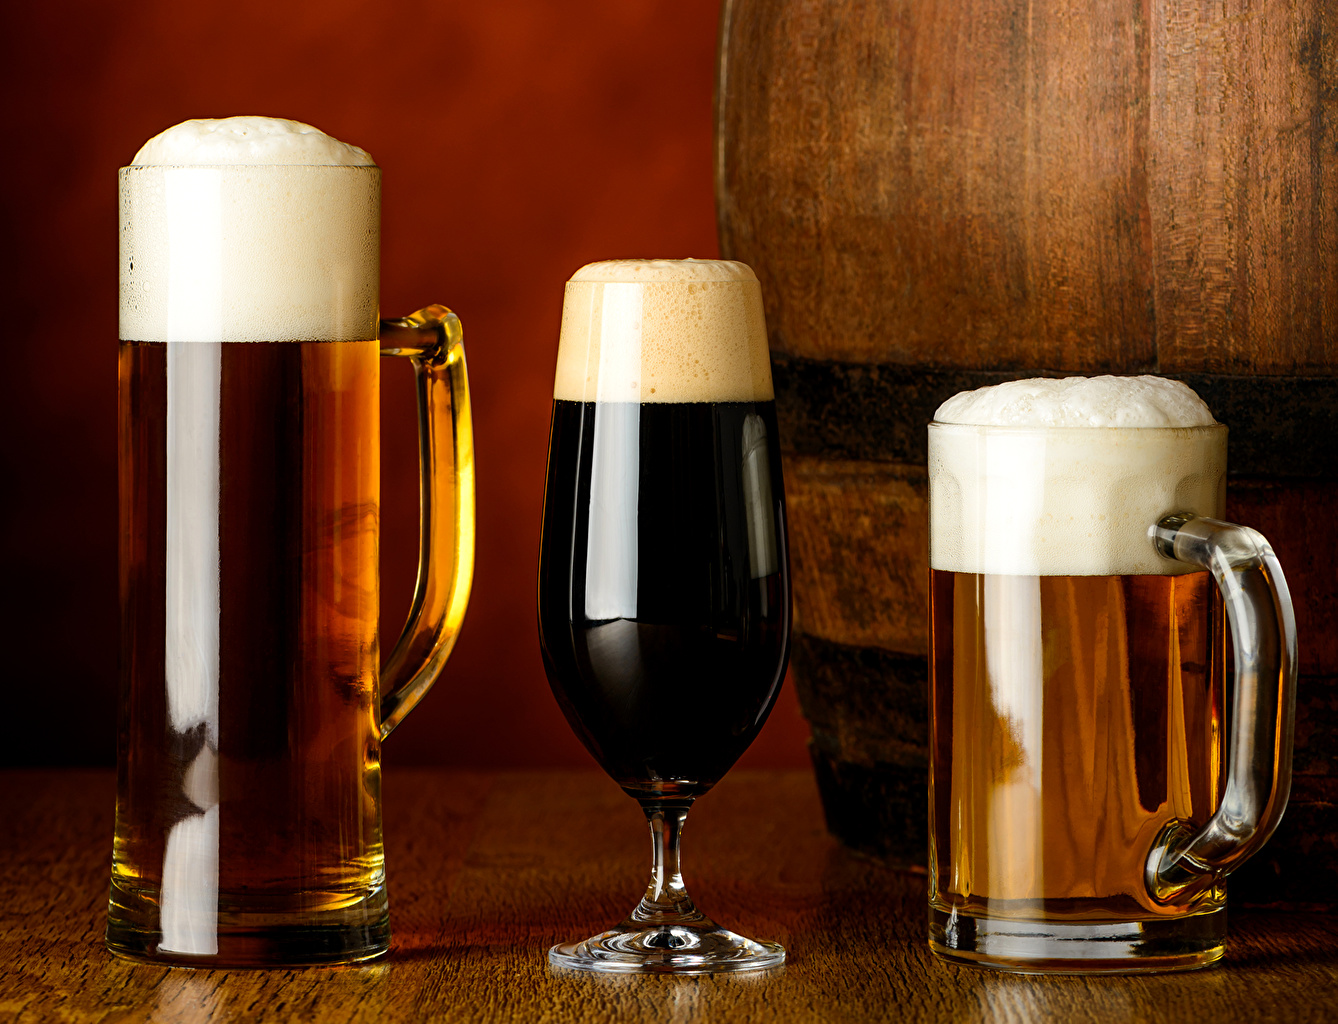 Images Beer Mug Foam Food Three 3 Drinks